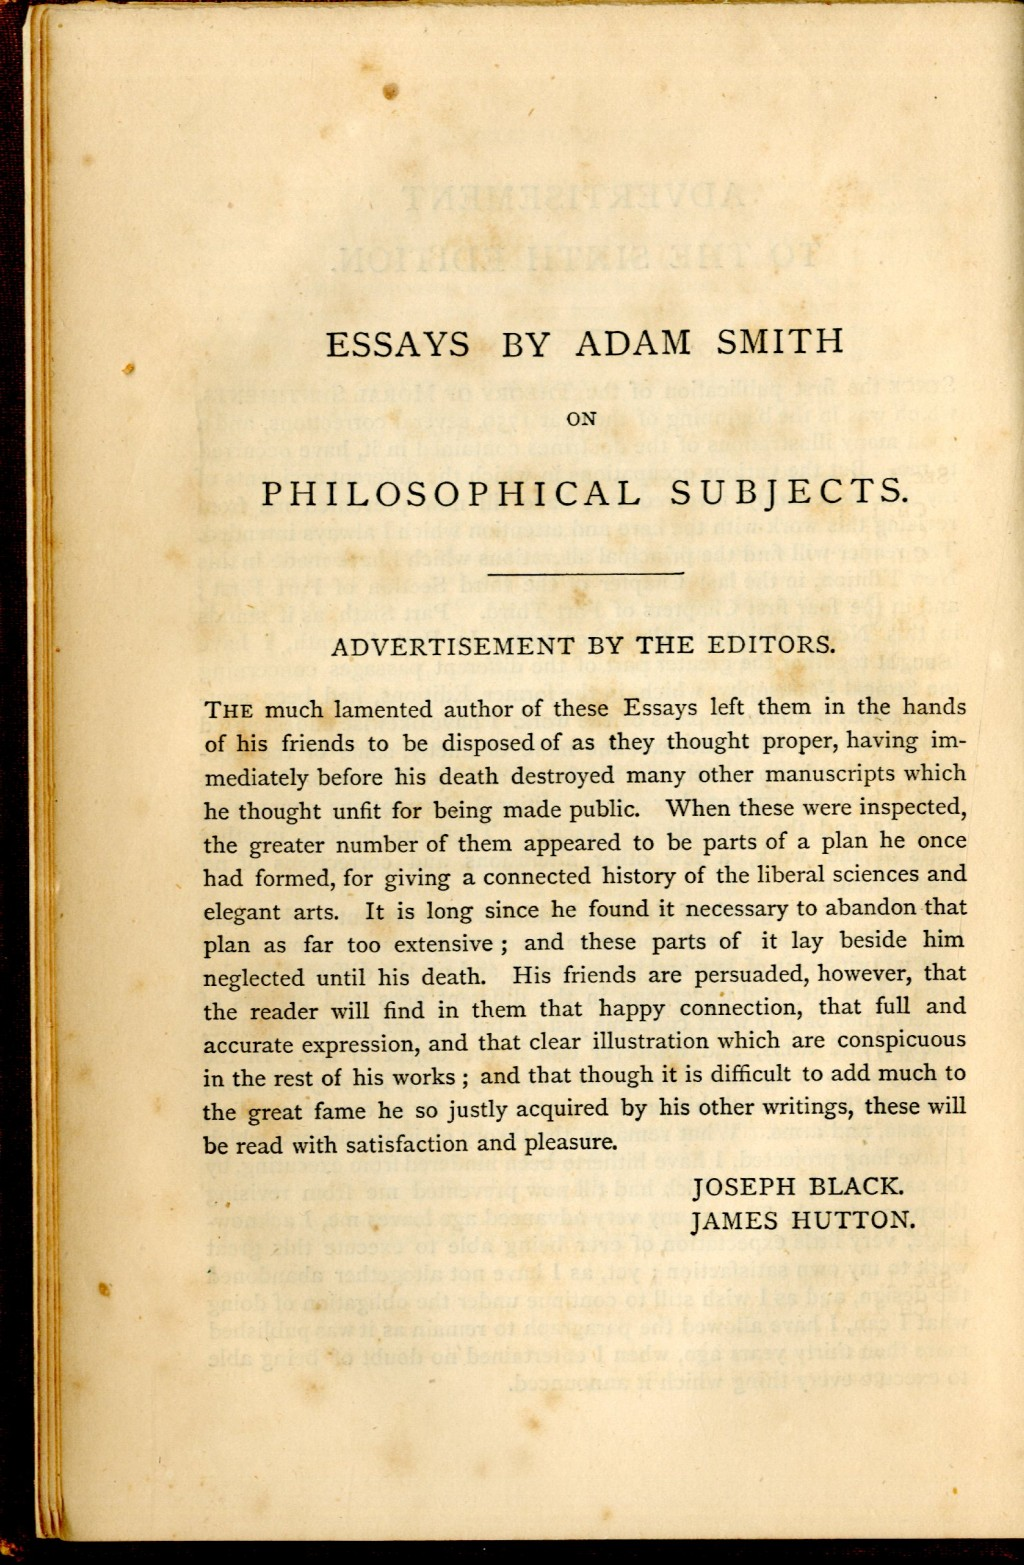 016 Essay Example Essays On Philosophical Best Subjects Summary Adam Smith Large